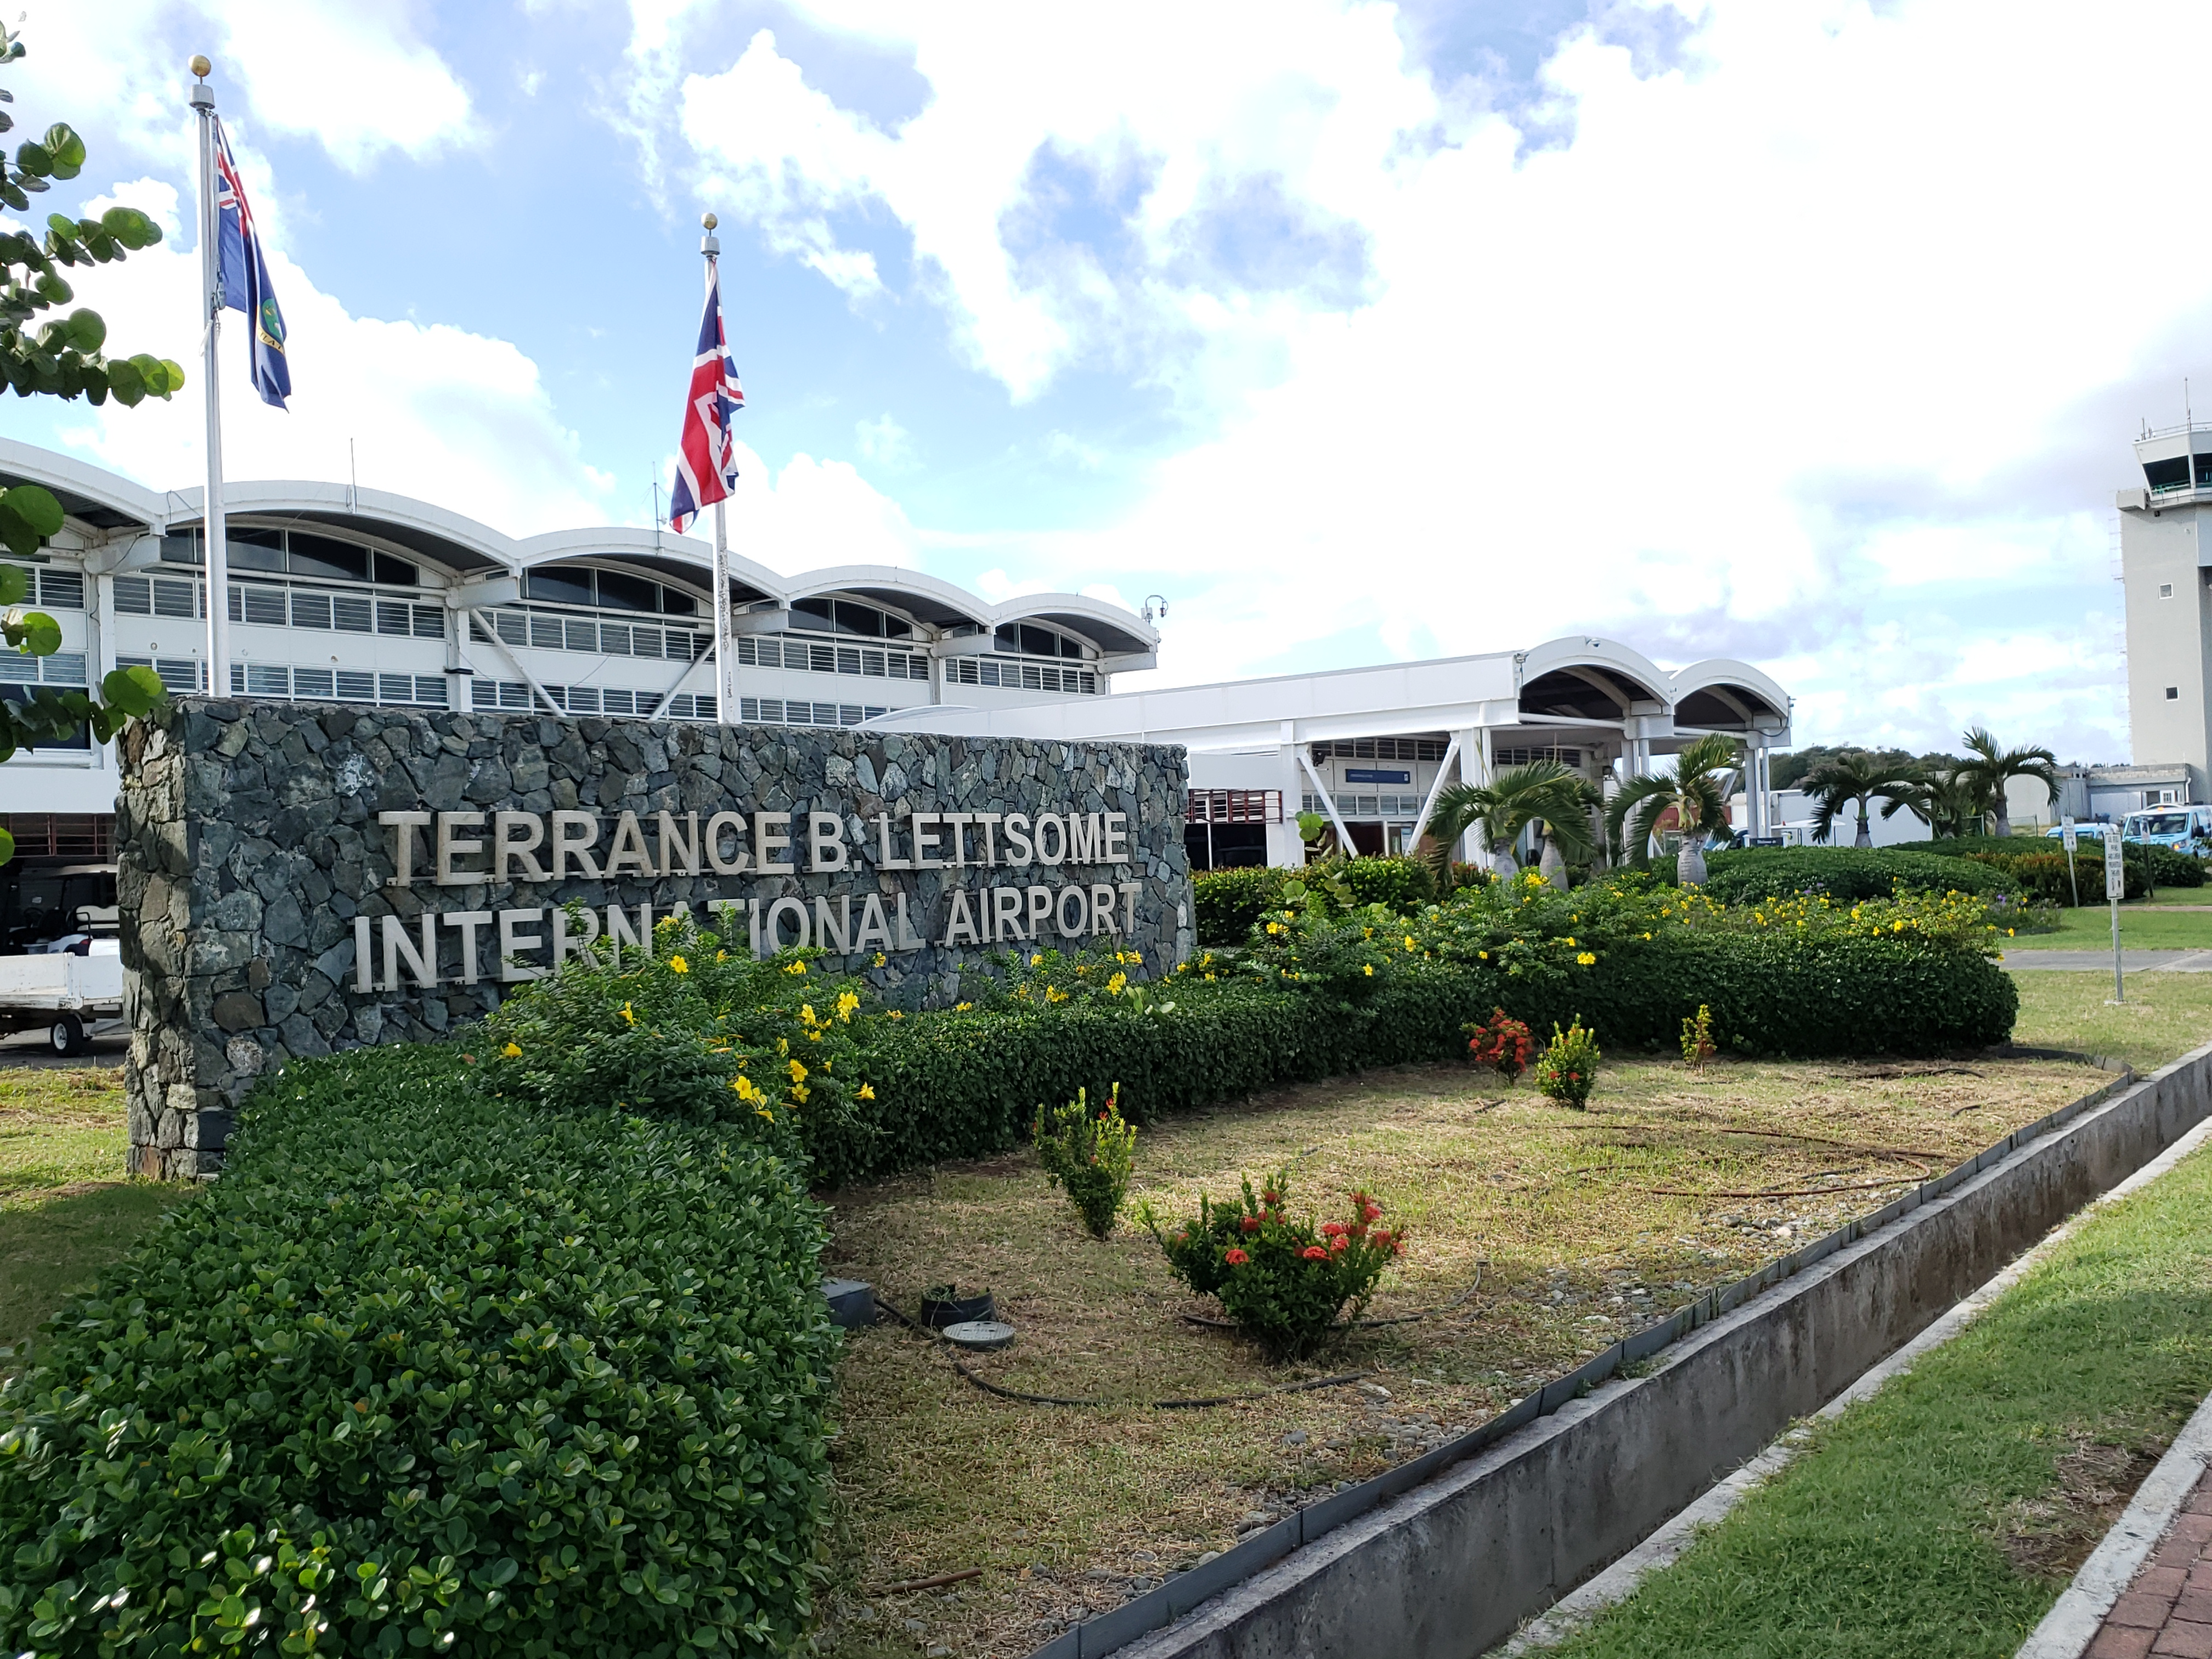 The British Virgin Islands [BVI] Airports Authority Announces Grand Reopening of the Terrance B. Lettsome International Airport in Tortola, BVI